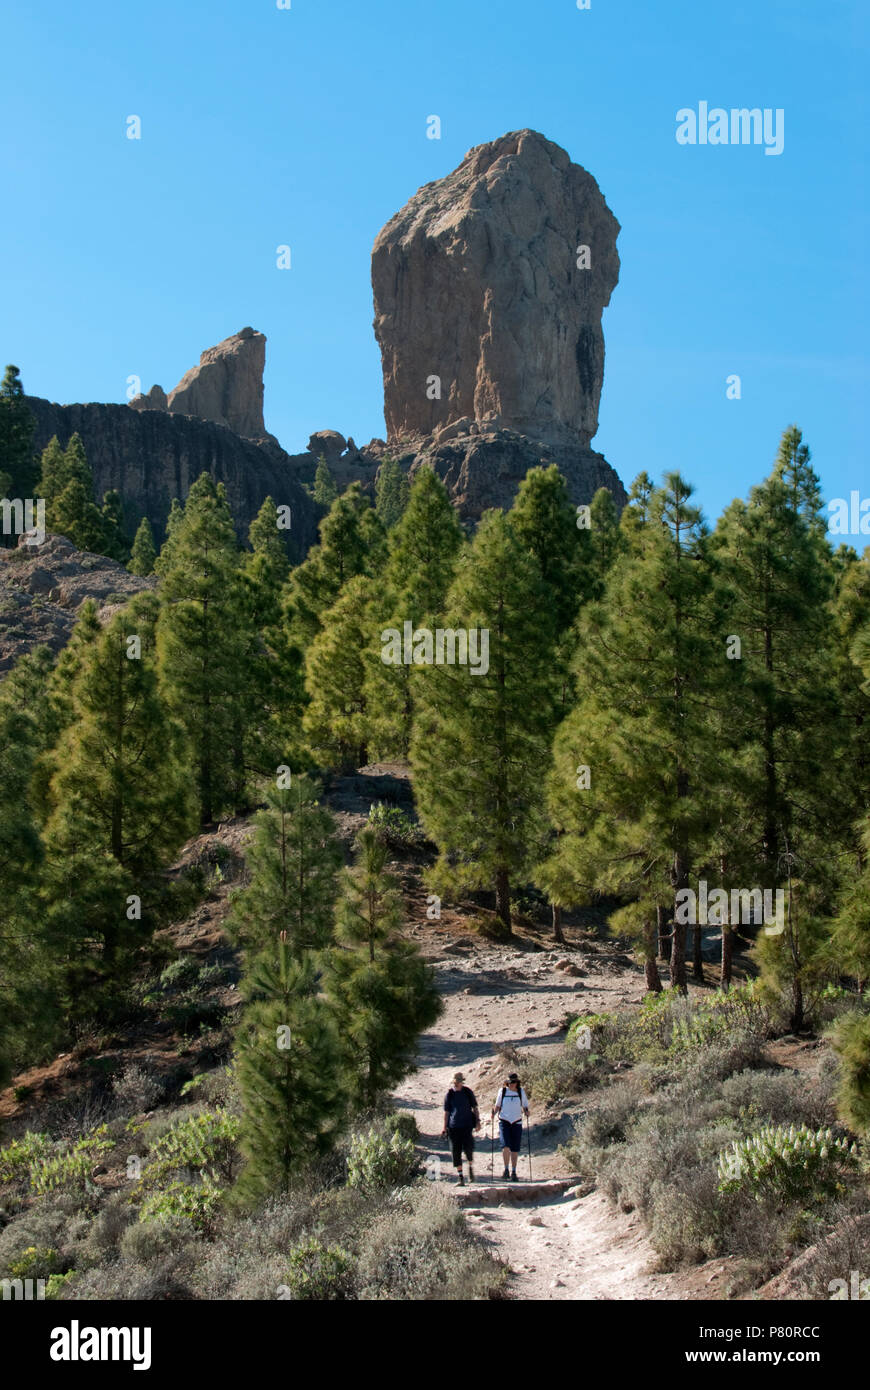 Roque Nublo and footpath through pine trees in centre of island - Stock Image